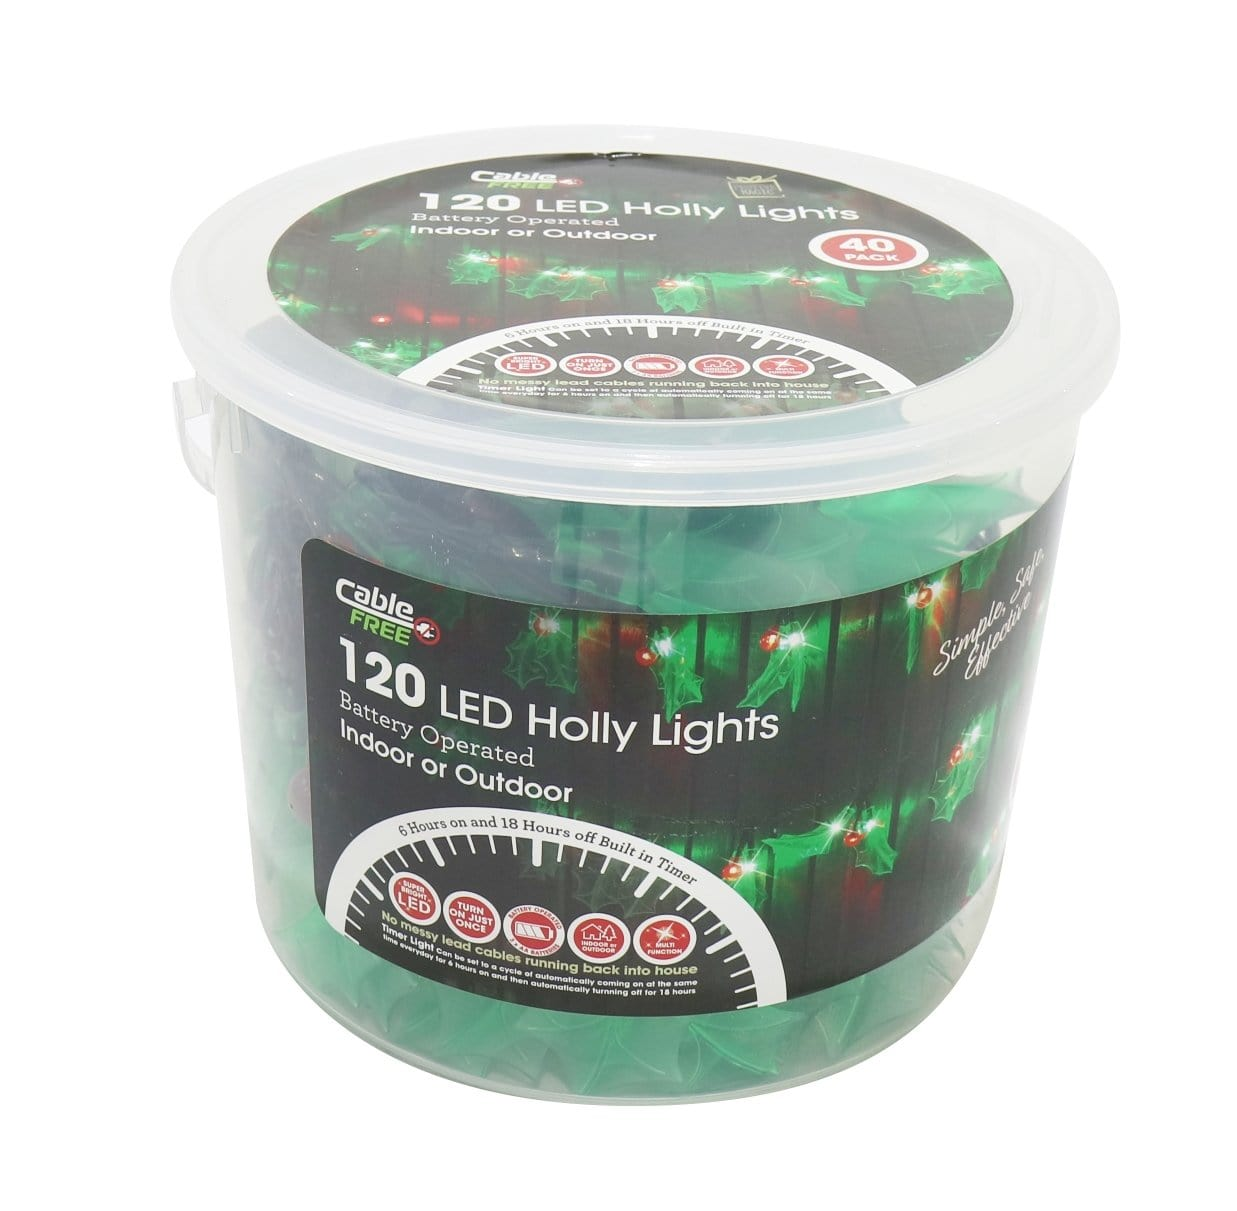 LED Holly Lights 40pc 120 B/O Timer